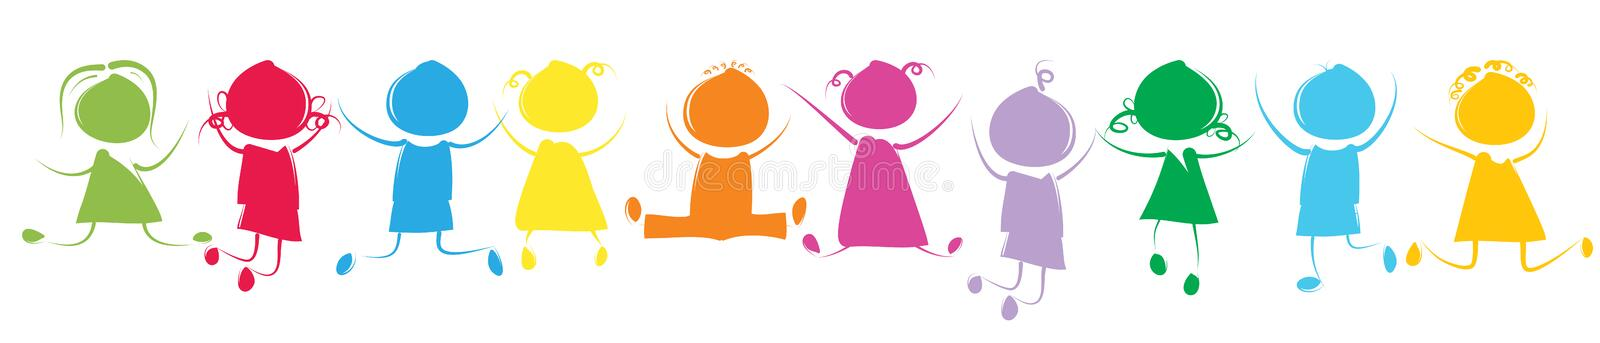 Colorful kids stock illustration